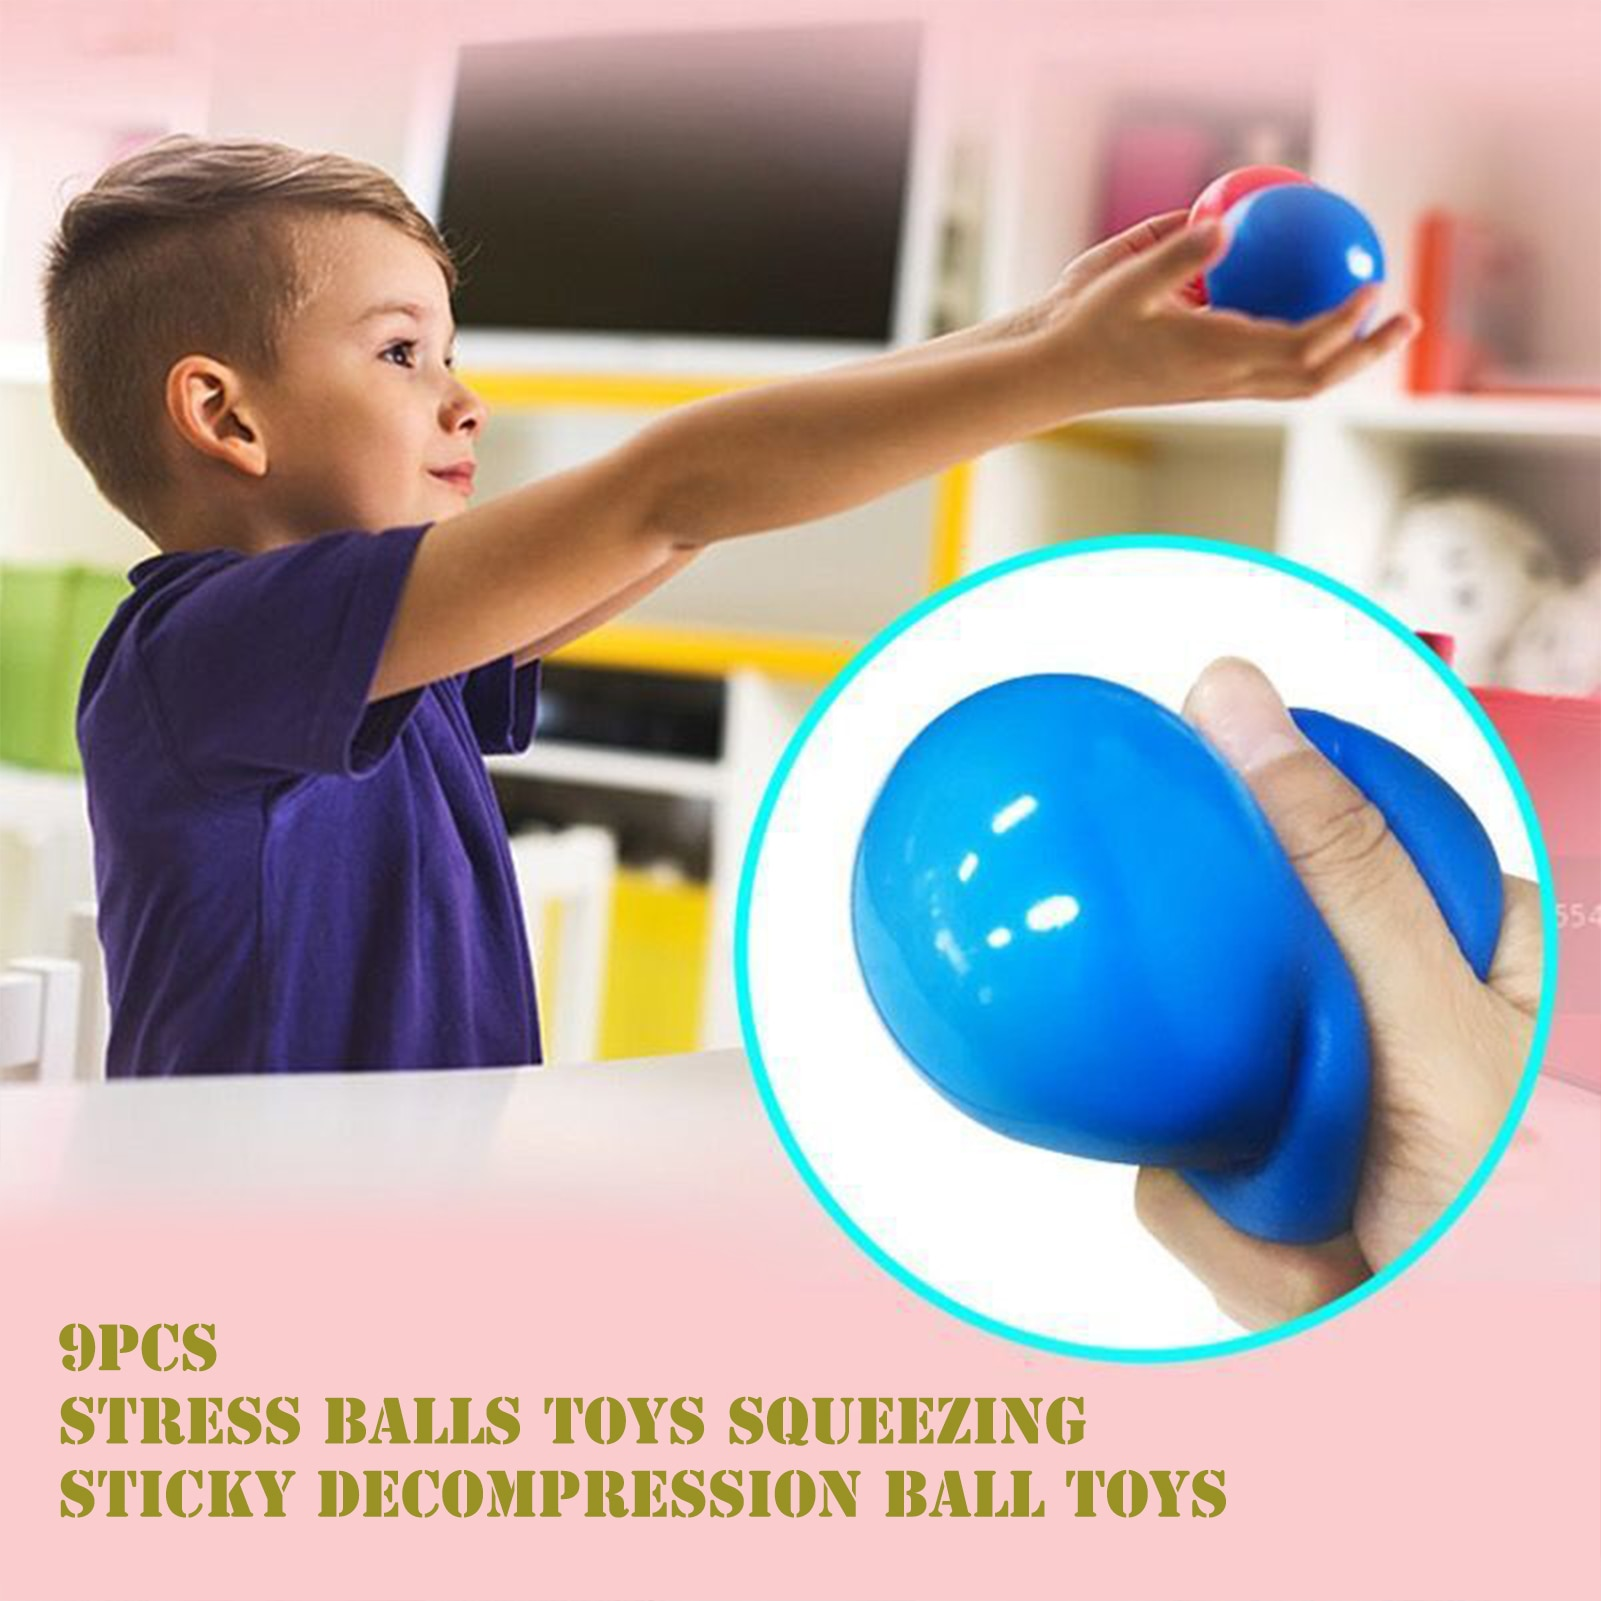 9PCS Novelty Stress Balls Toys Children Desktop Early Educational Toy Sensory Squeezing Sticky Decompression Ball Toys For Kids enlarge